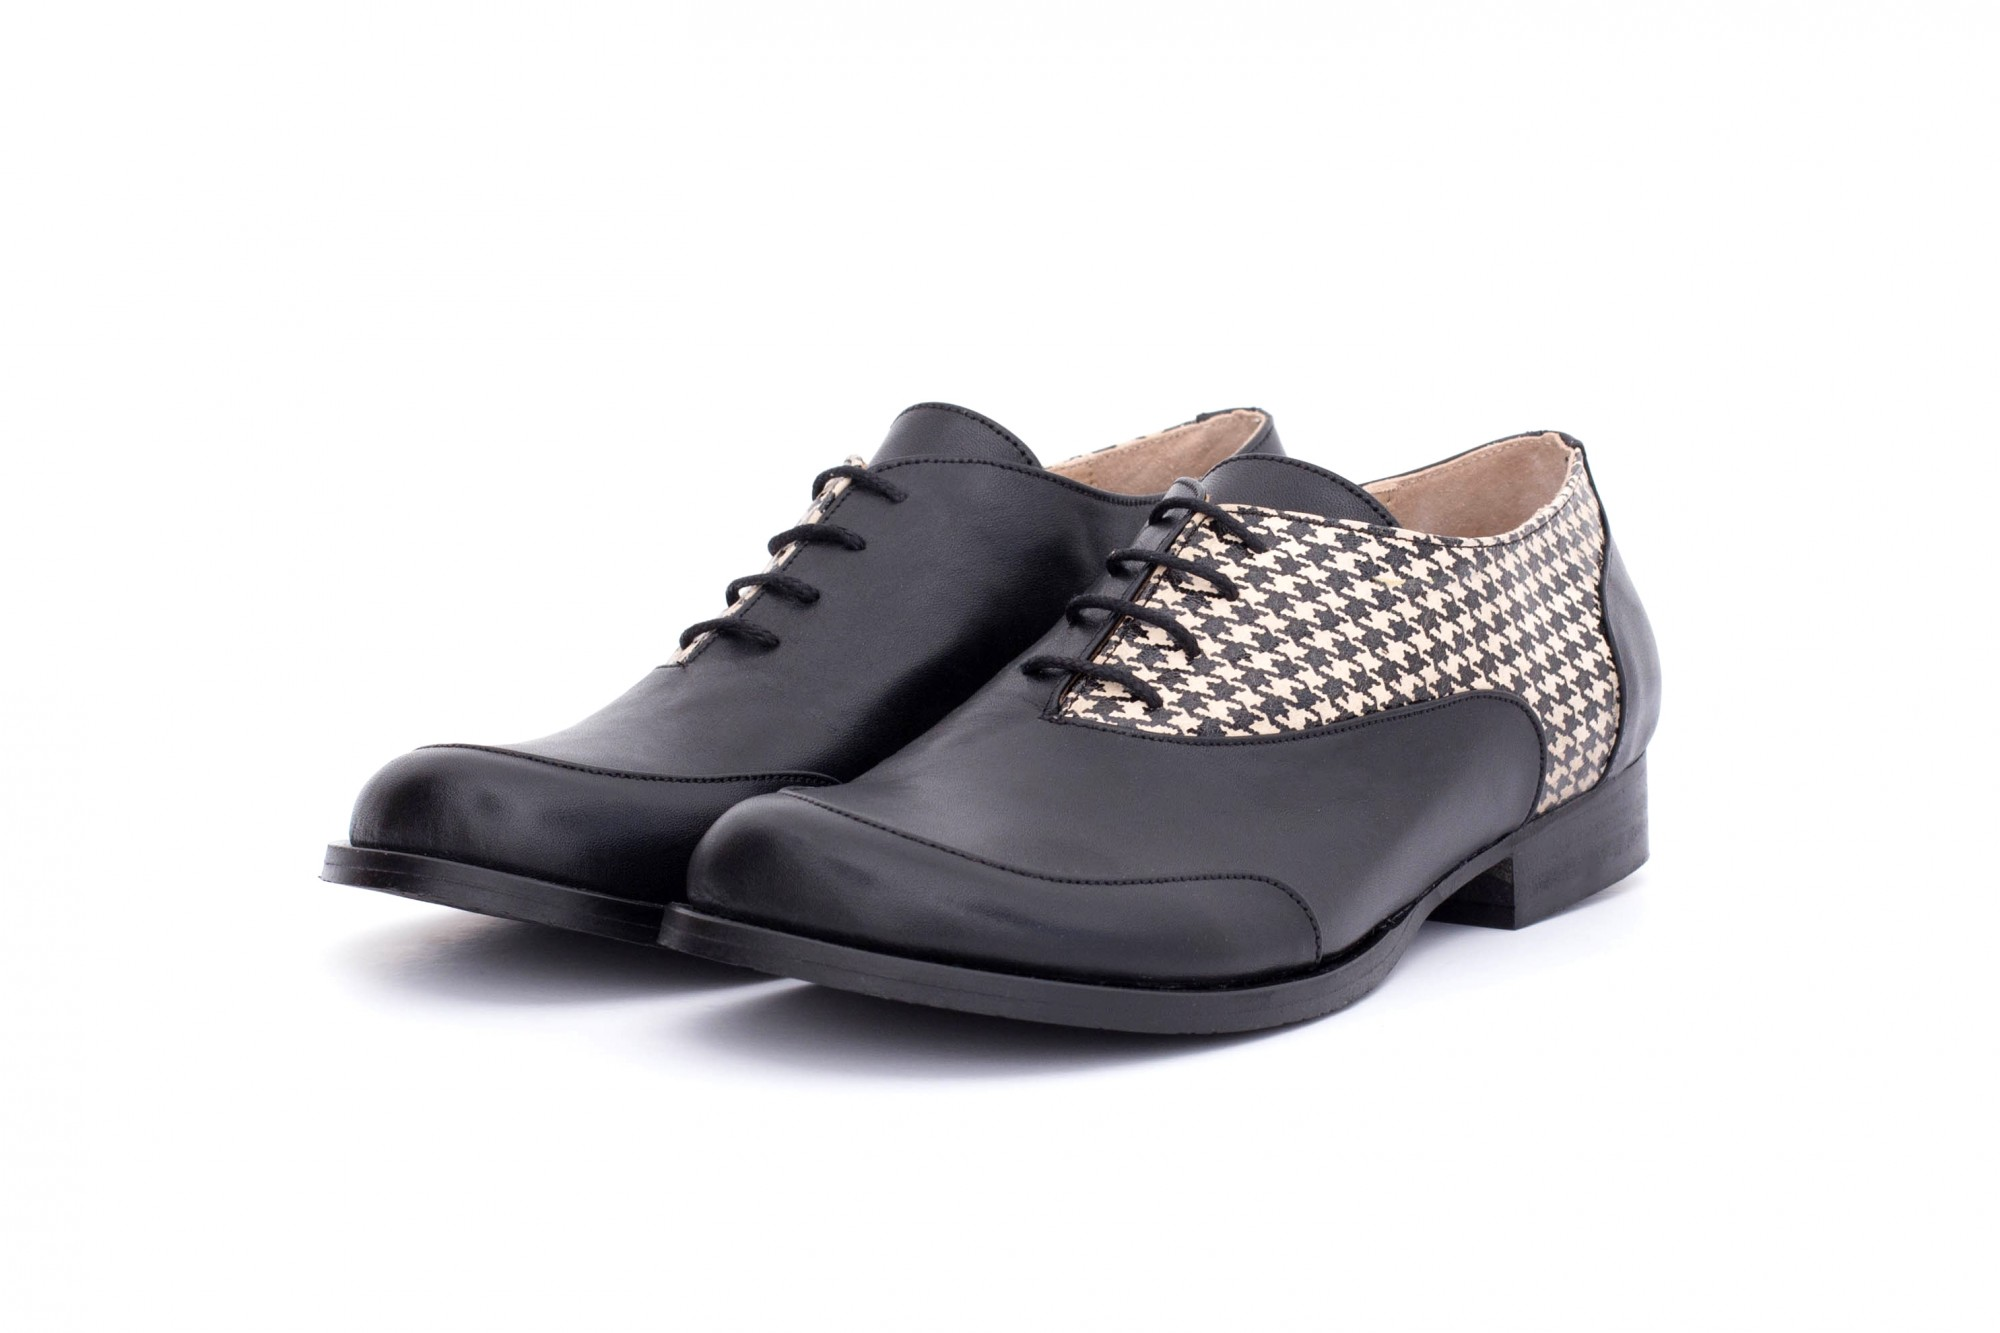 0ddd68a8f80e64 Black women s shoes Houndstooth. Women s leather shoes black flat ...